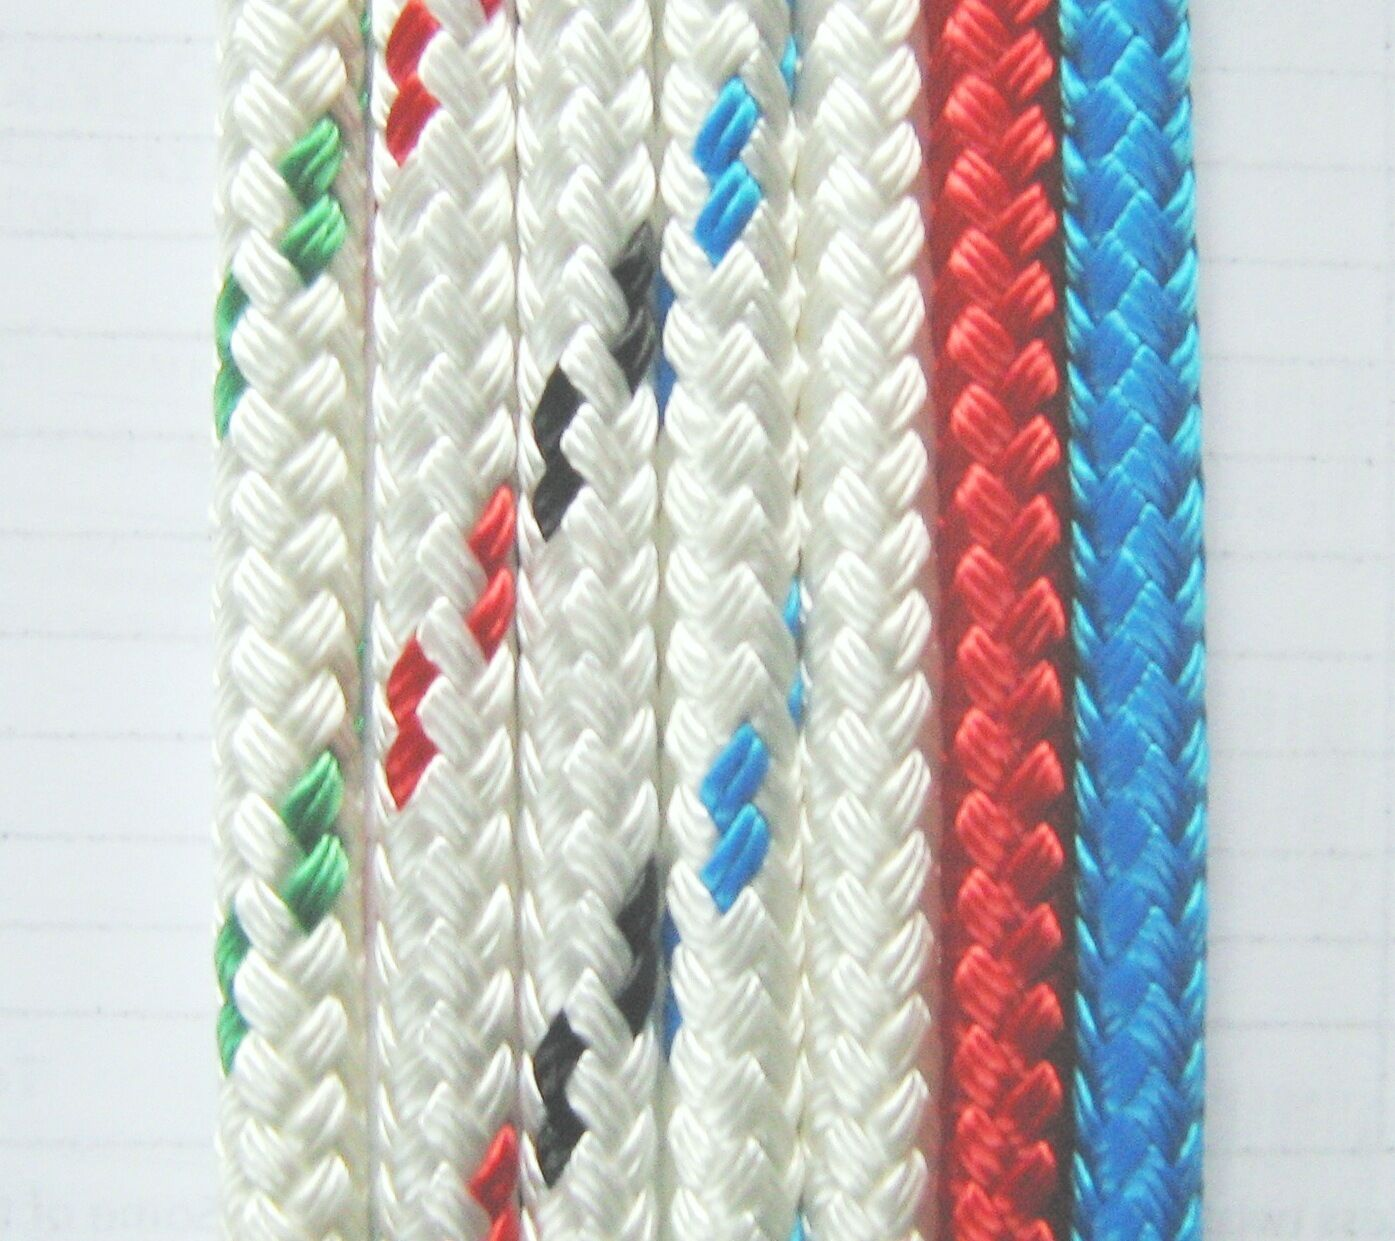 Halyard rope polyester Yacht Braid LS  10mm,  12 metres to 40 metres, 7 colours